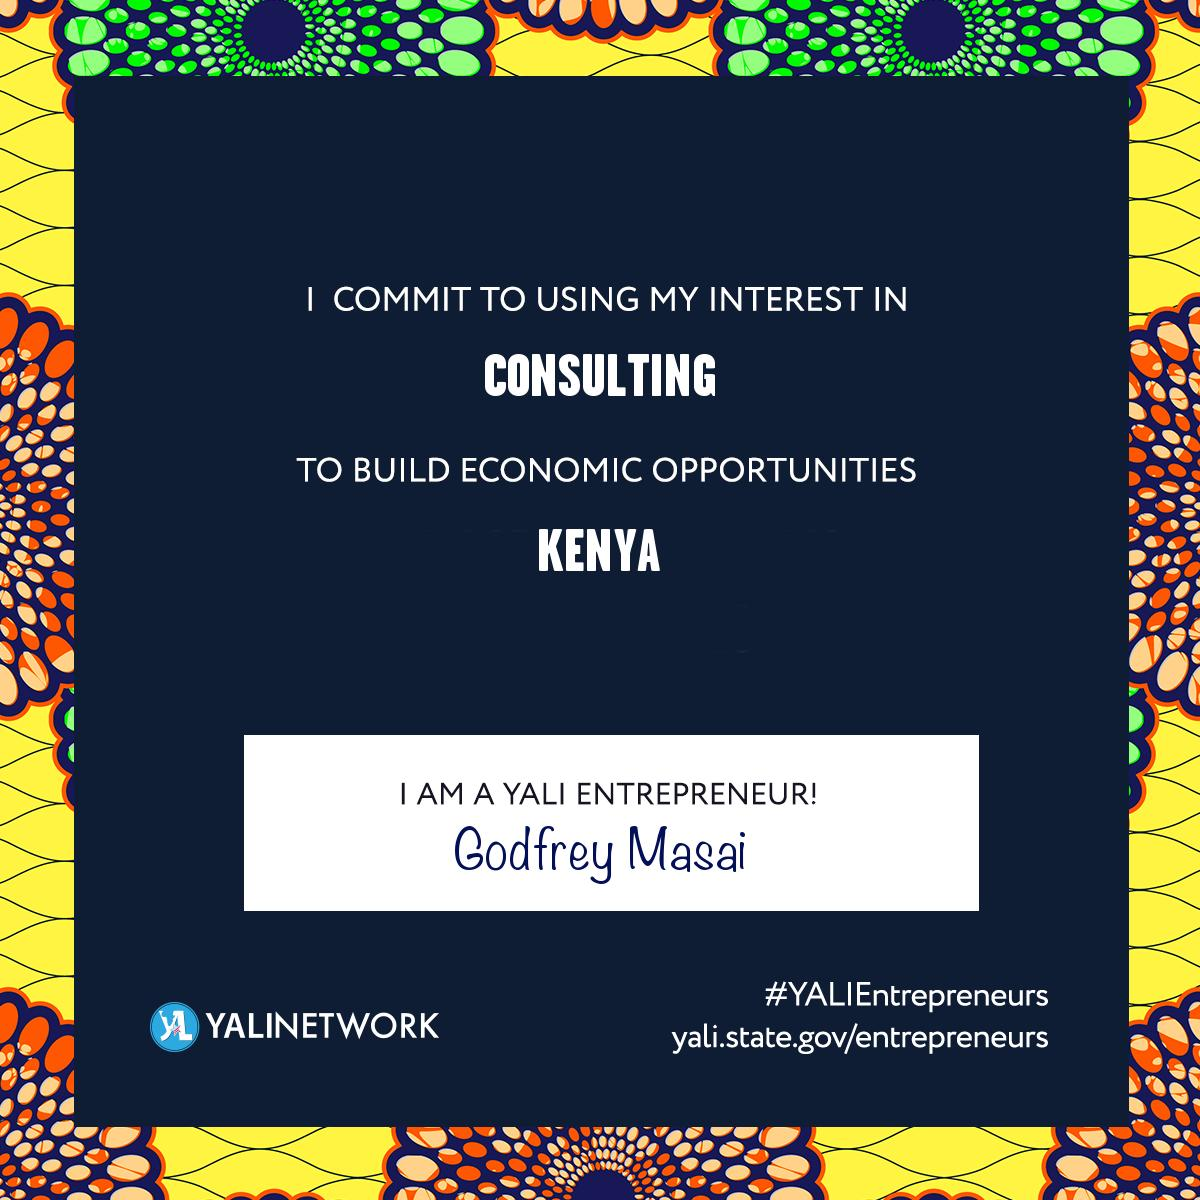 I commit to using my interest in Consulting, To Build Economic Opportunities in Kenya  @YALIRLCEA  #YALIEntrepreneurs<br>http://pic.twitter.com/GiaC7tycDI